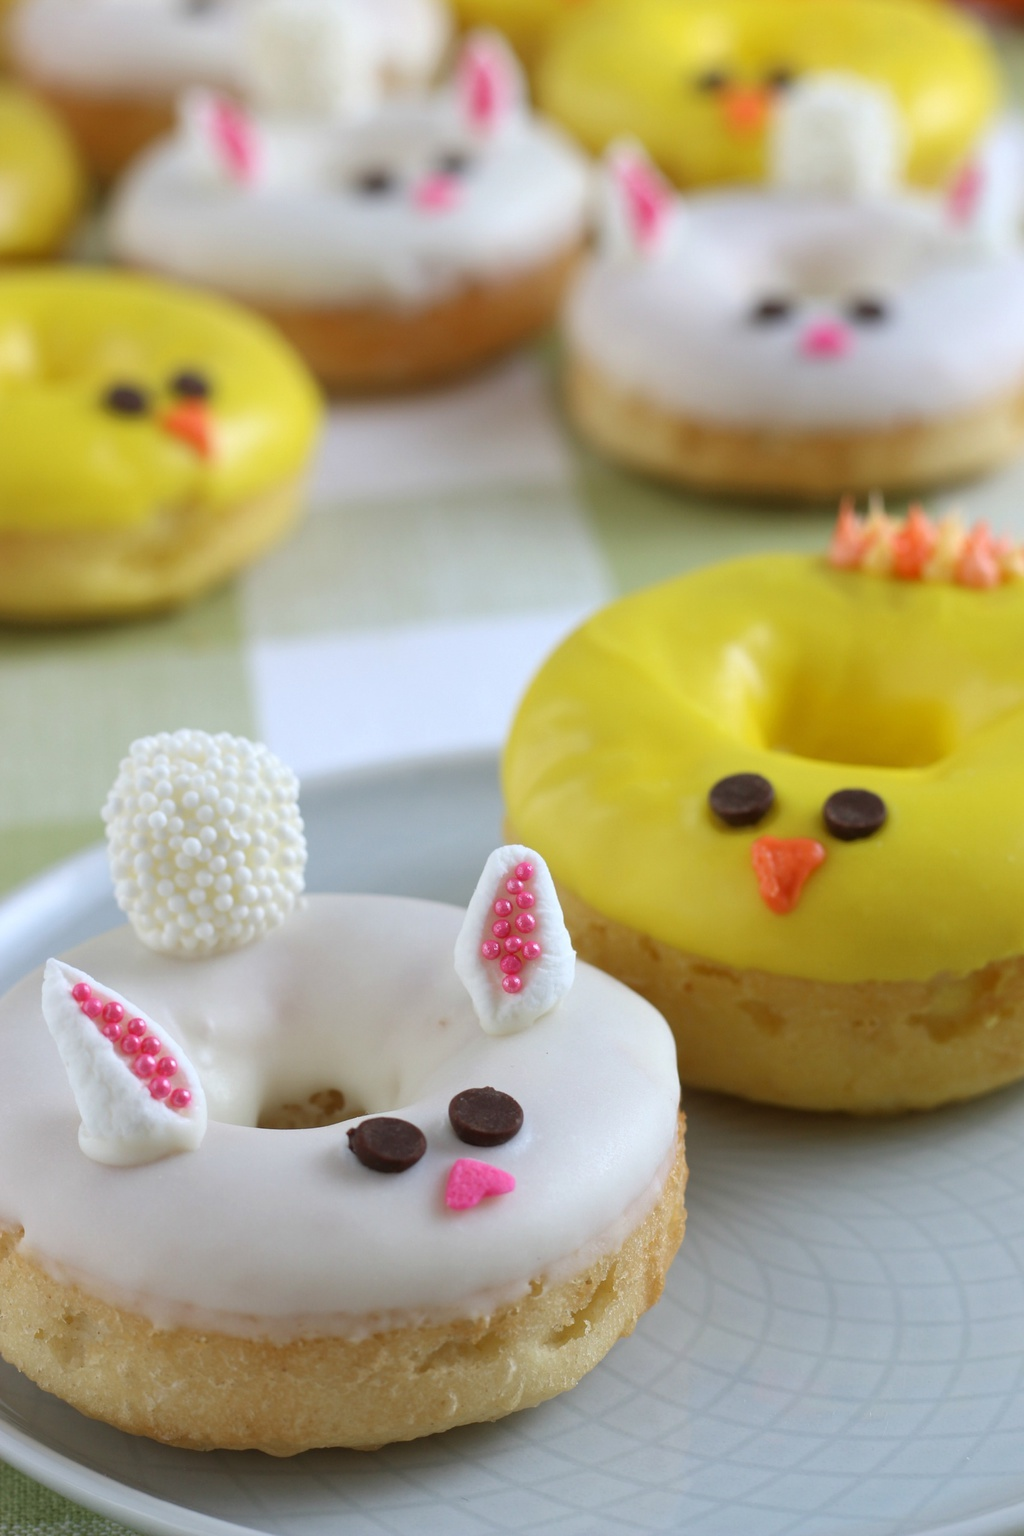 Baked Donuts Recipe, Easter Dessert, Easter Donoughts, Baked Donuts